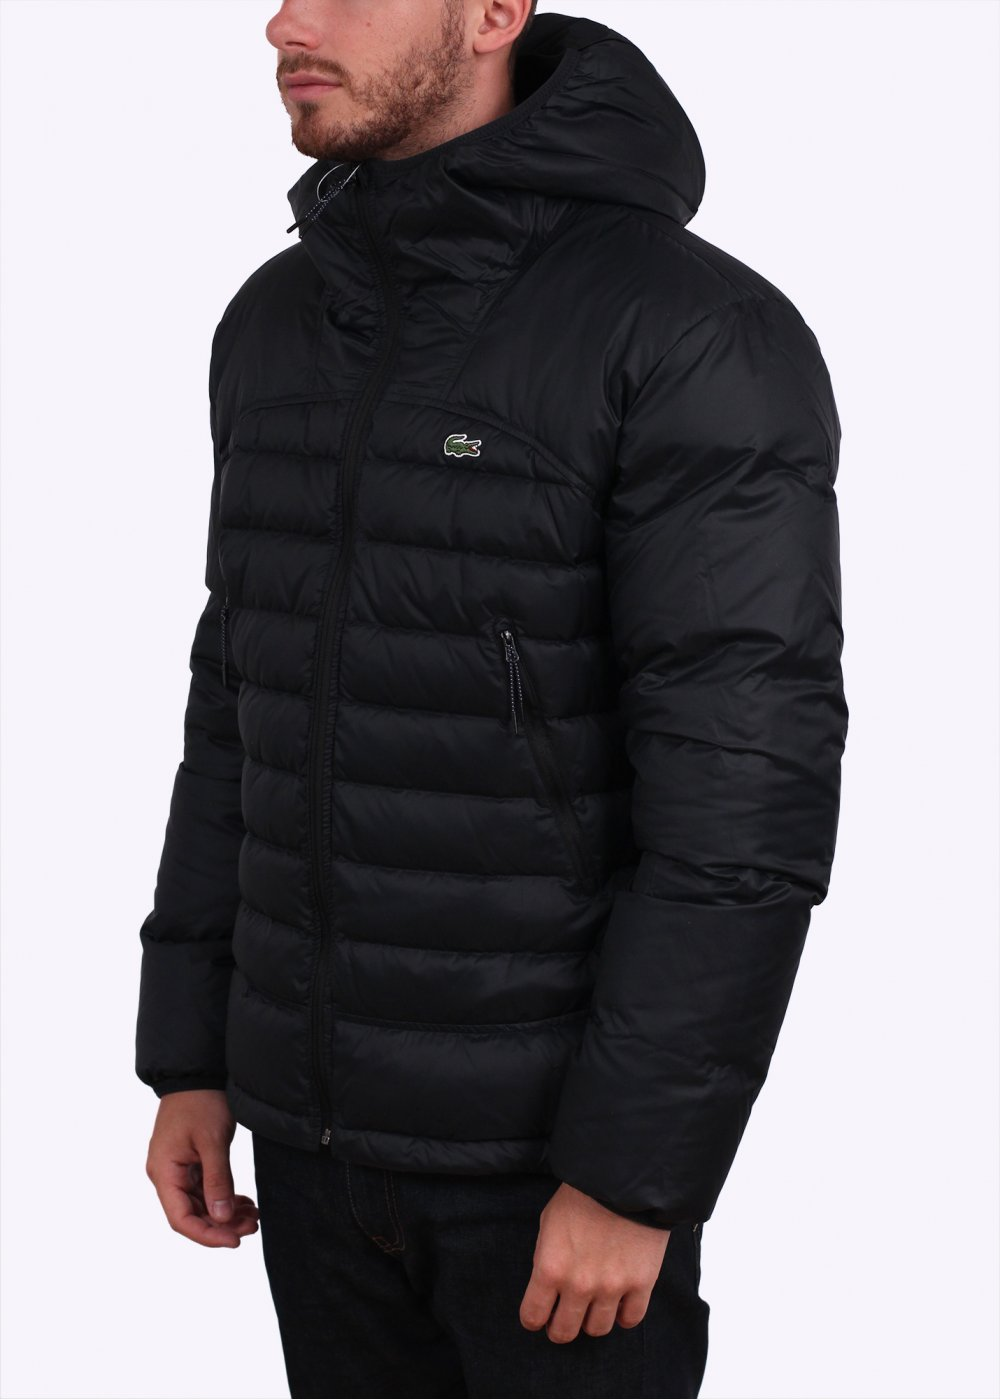 Barbour Spean large padded jacket in green. £ Polo Ralph Lauren lightweight down puffer jacket player logo in black. £ Armani Exchange long down puffer jacket in black. Nike Down Filled Hooded Jacket In Black £ ellesse chevron puffer jacket in black. £ Good For Nothing hooded puffer jacket in black.